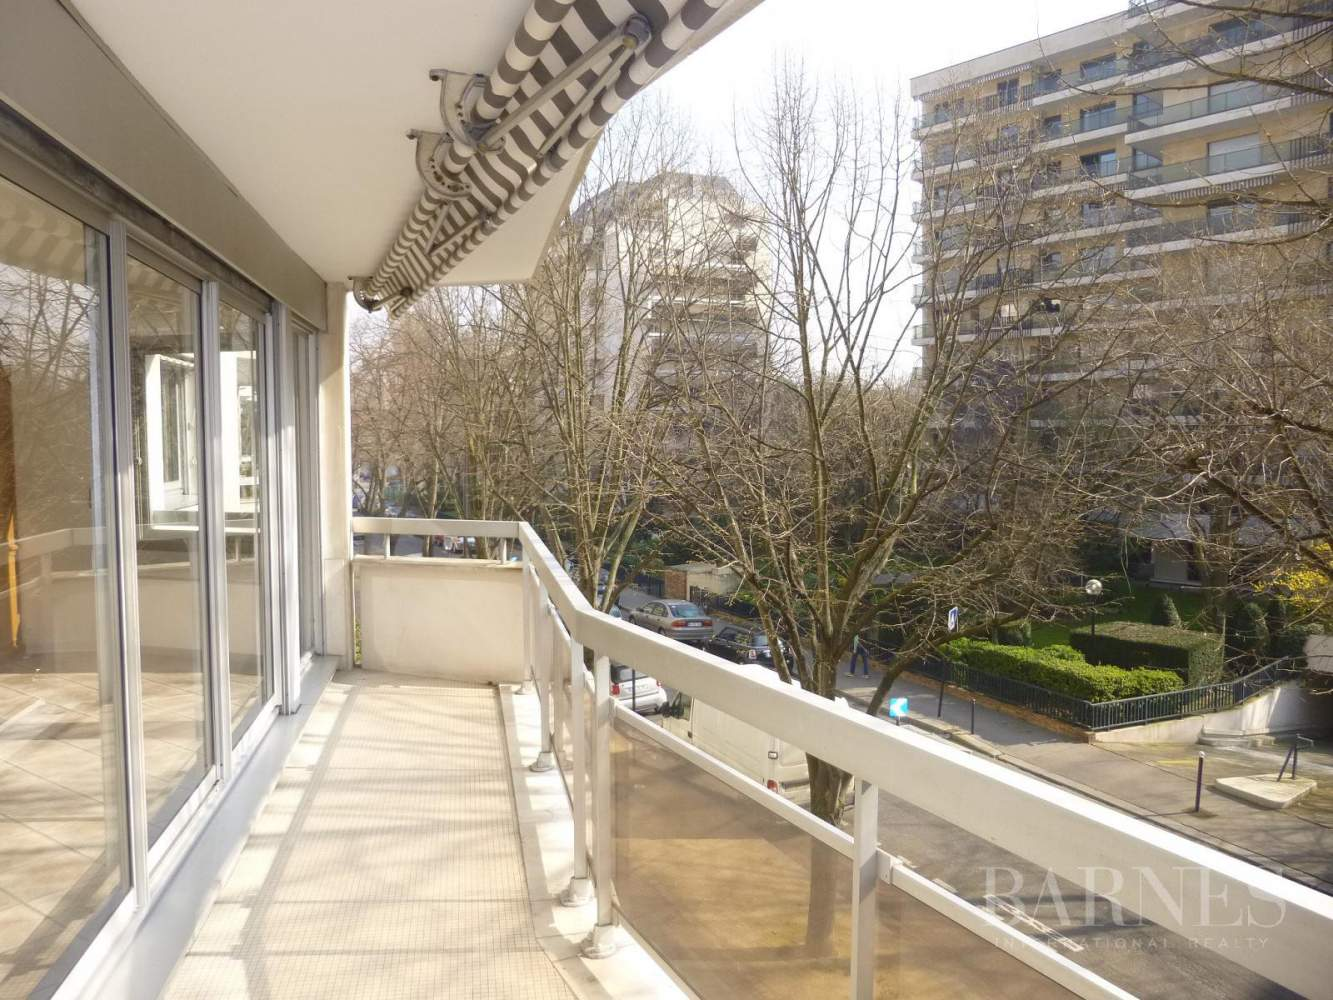 NEUILLY APPARTEMENT VIDE 144M² 3 CHAMBRES CAVE 2 PARKINGS picture 1